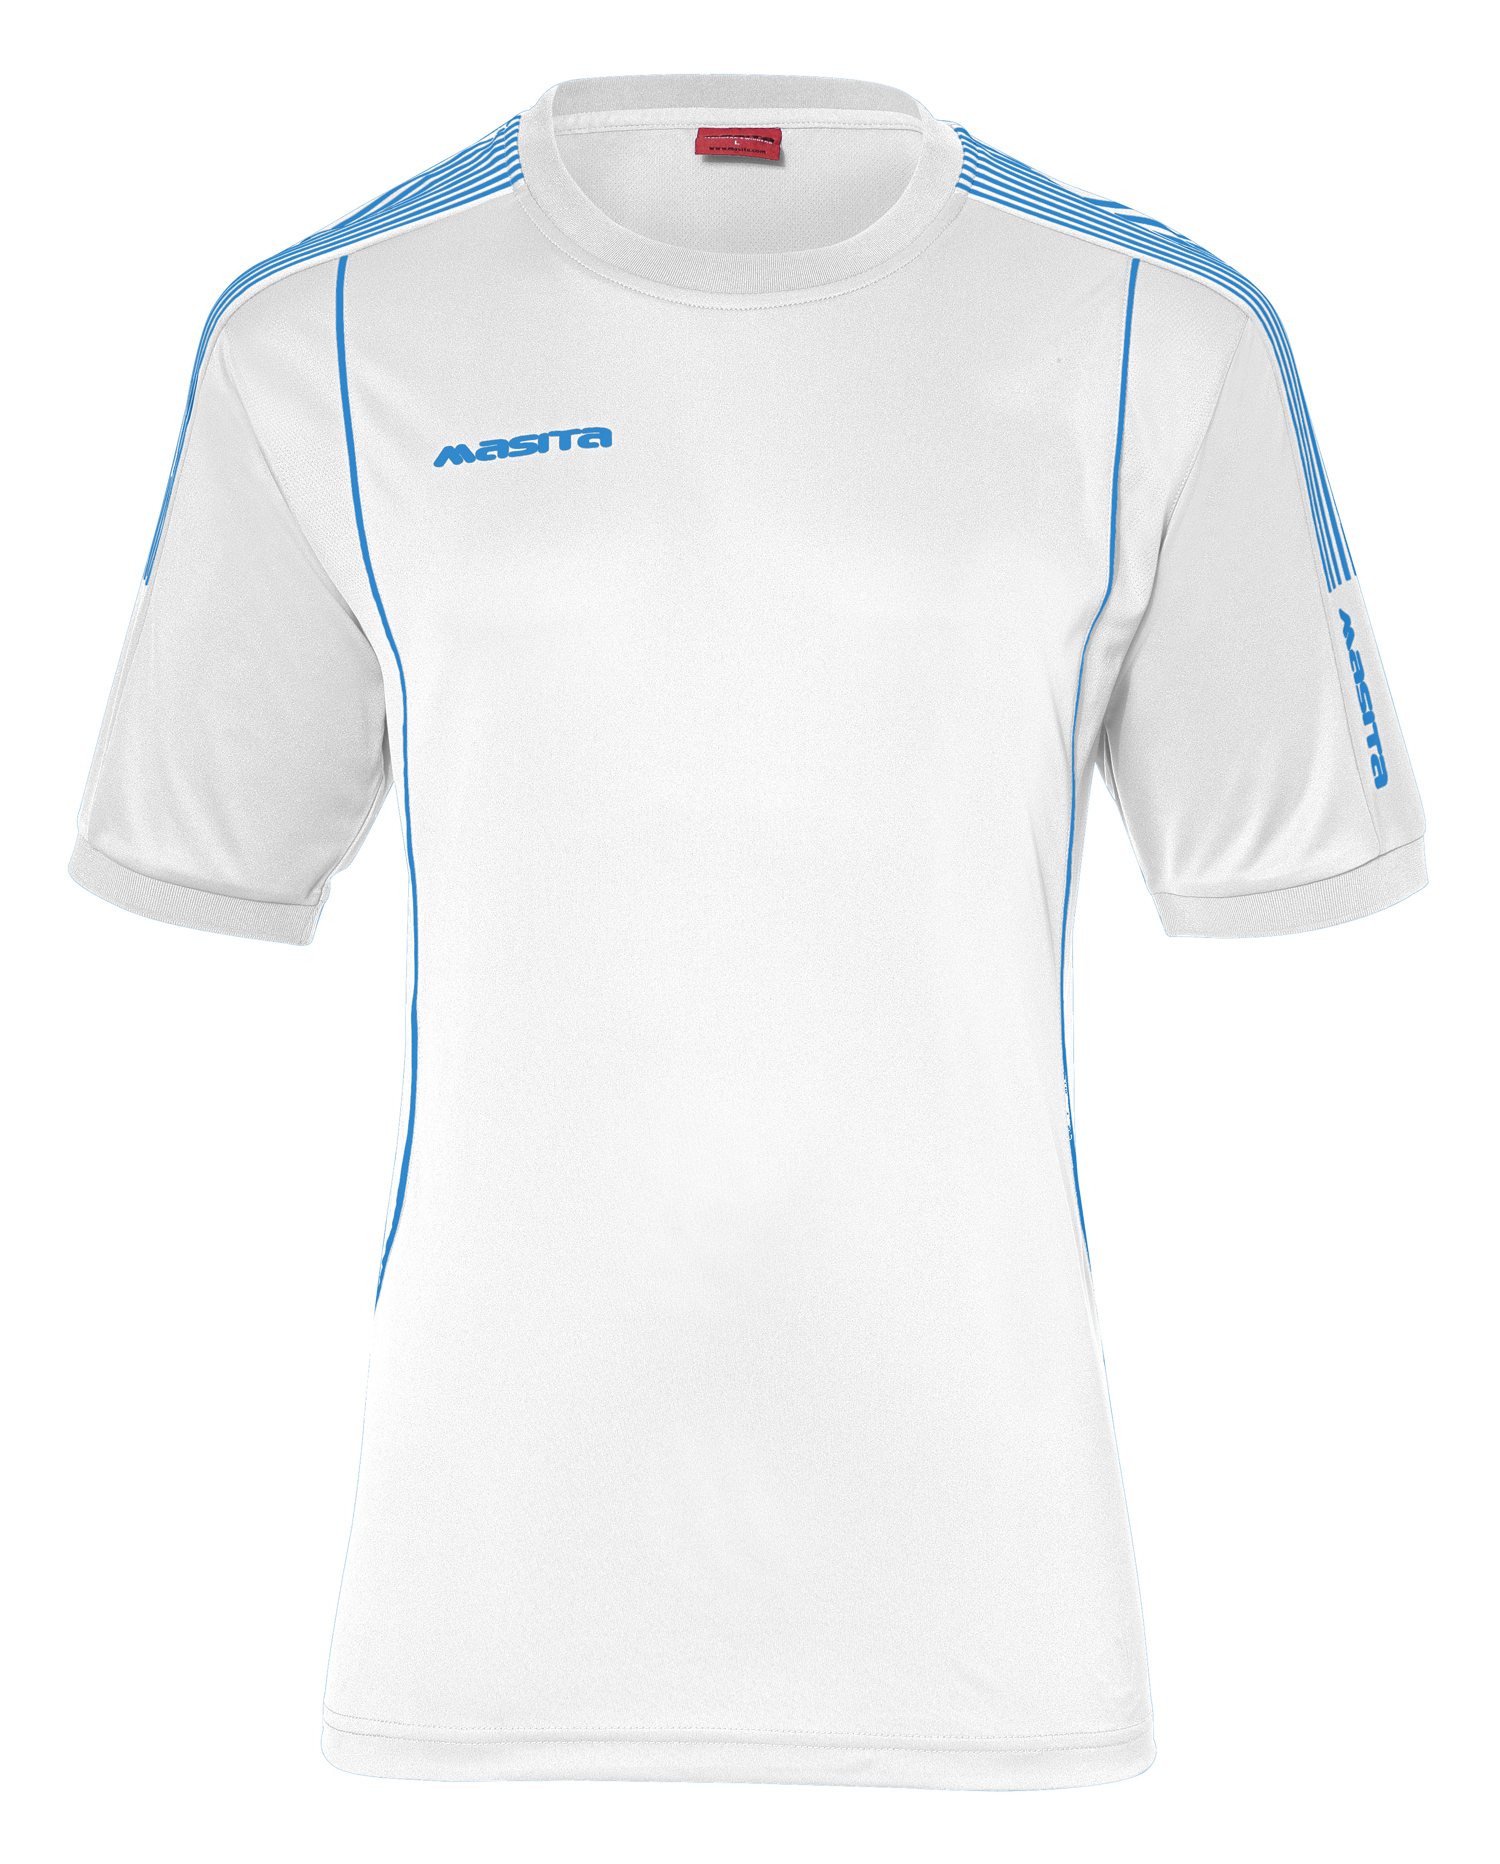 T-Shirt Barca  White / Sky Blue